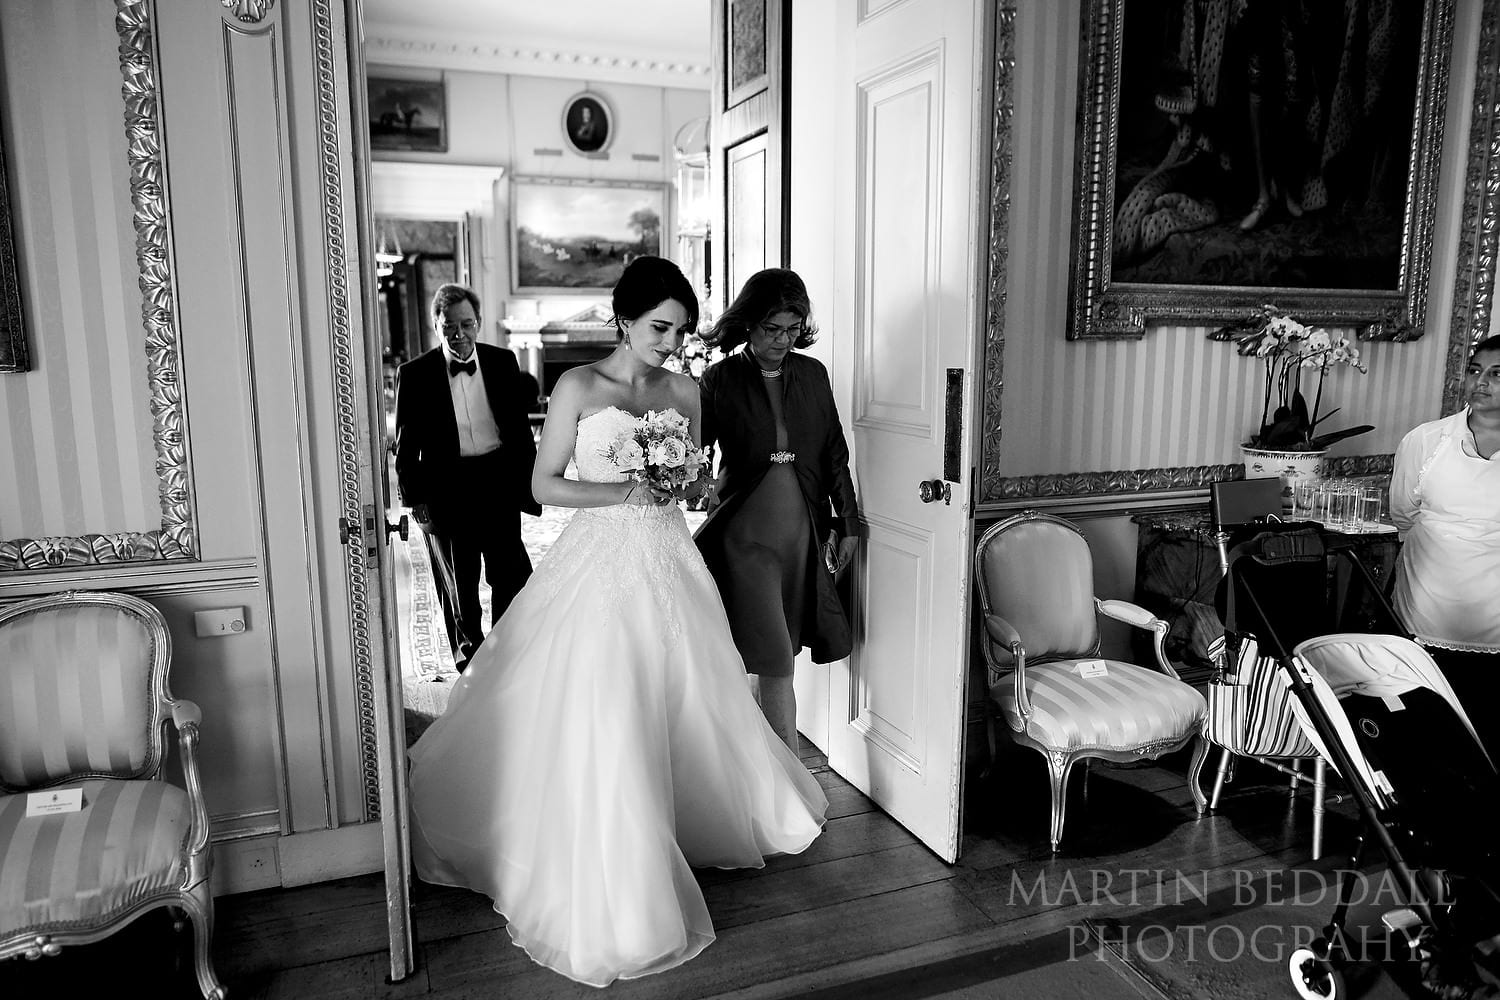 Start of the ceremony at Goodwood House wedding